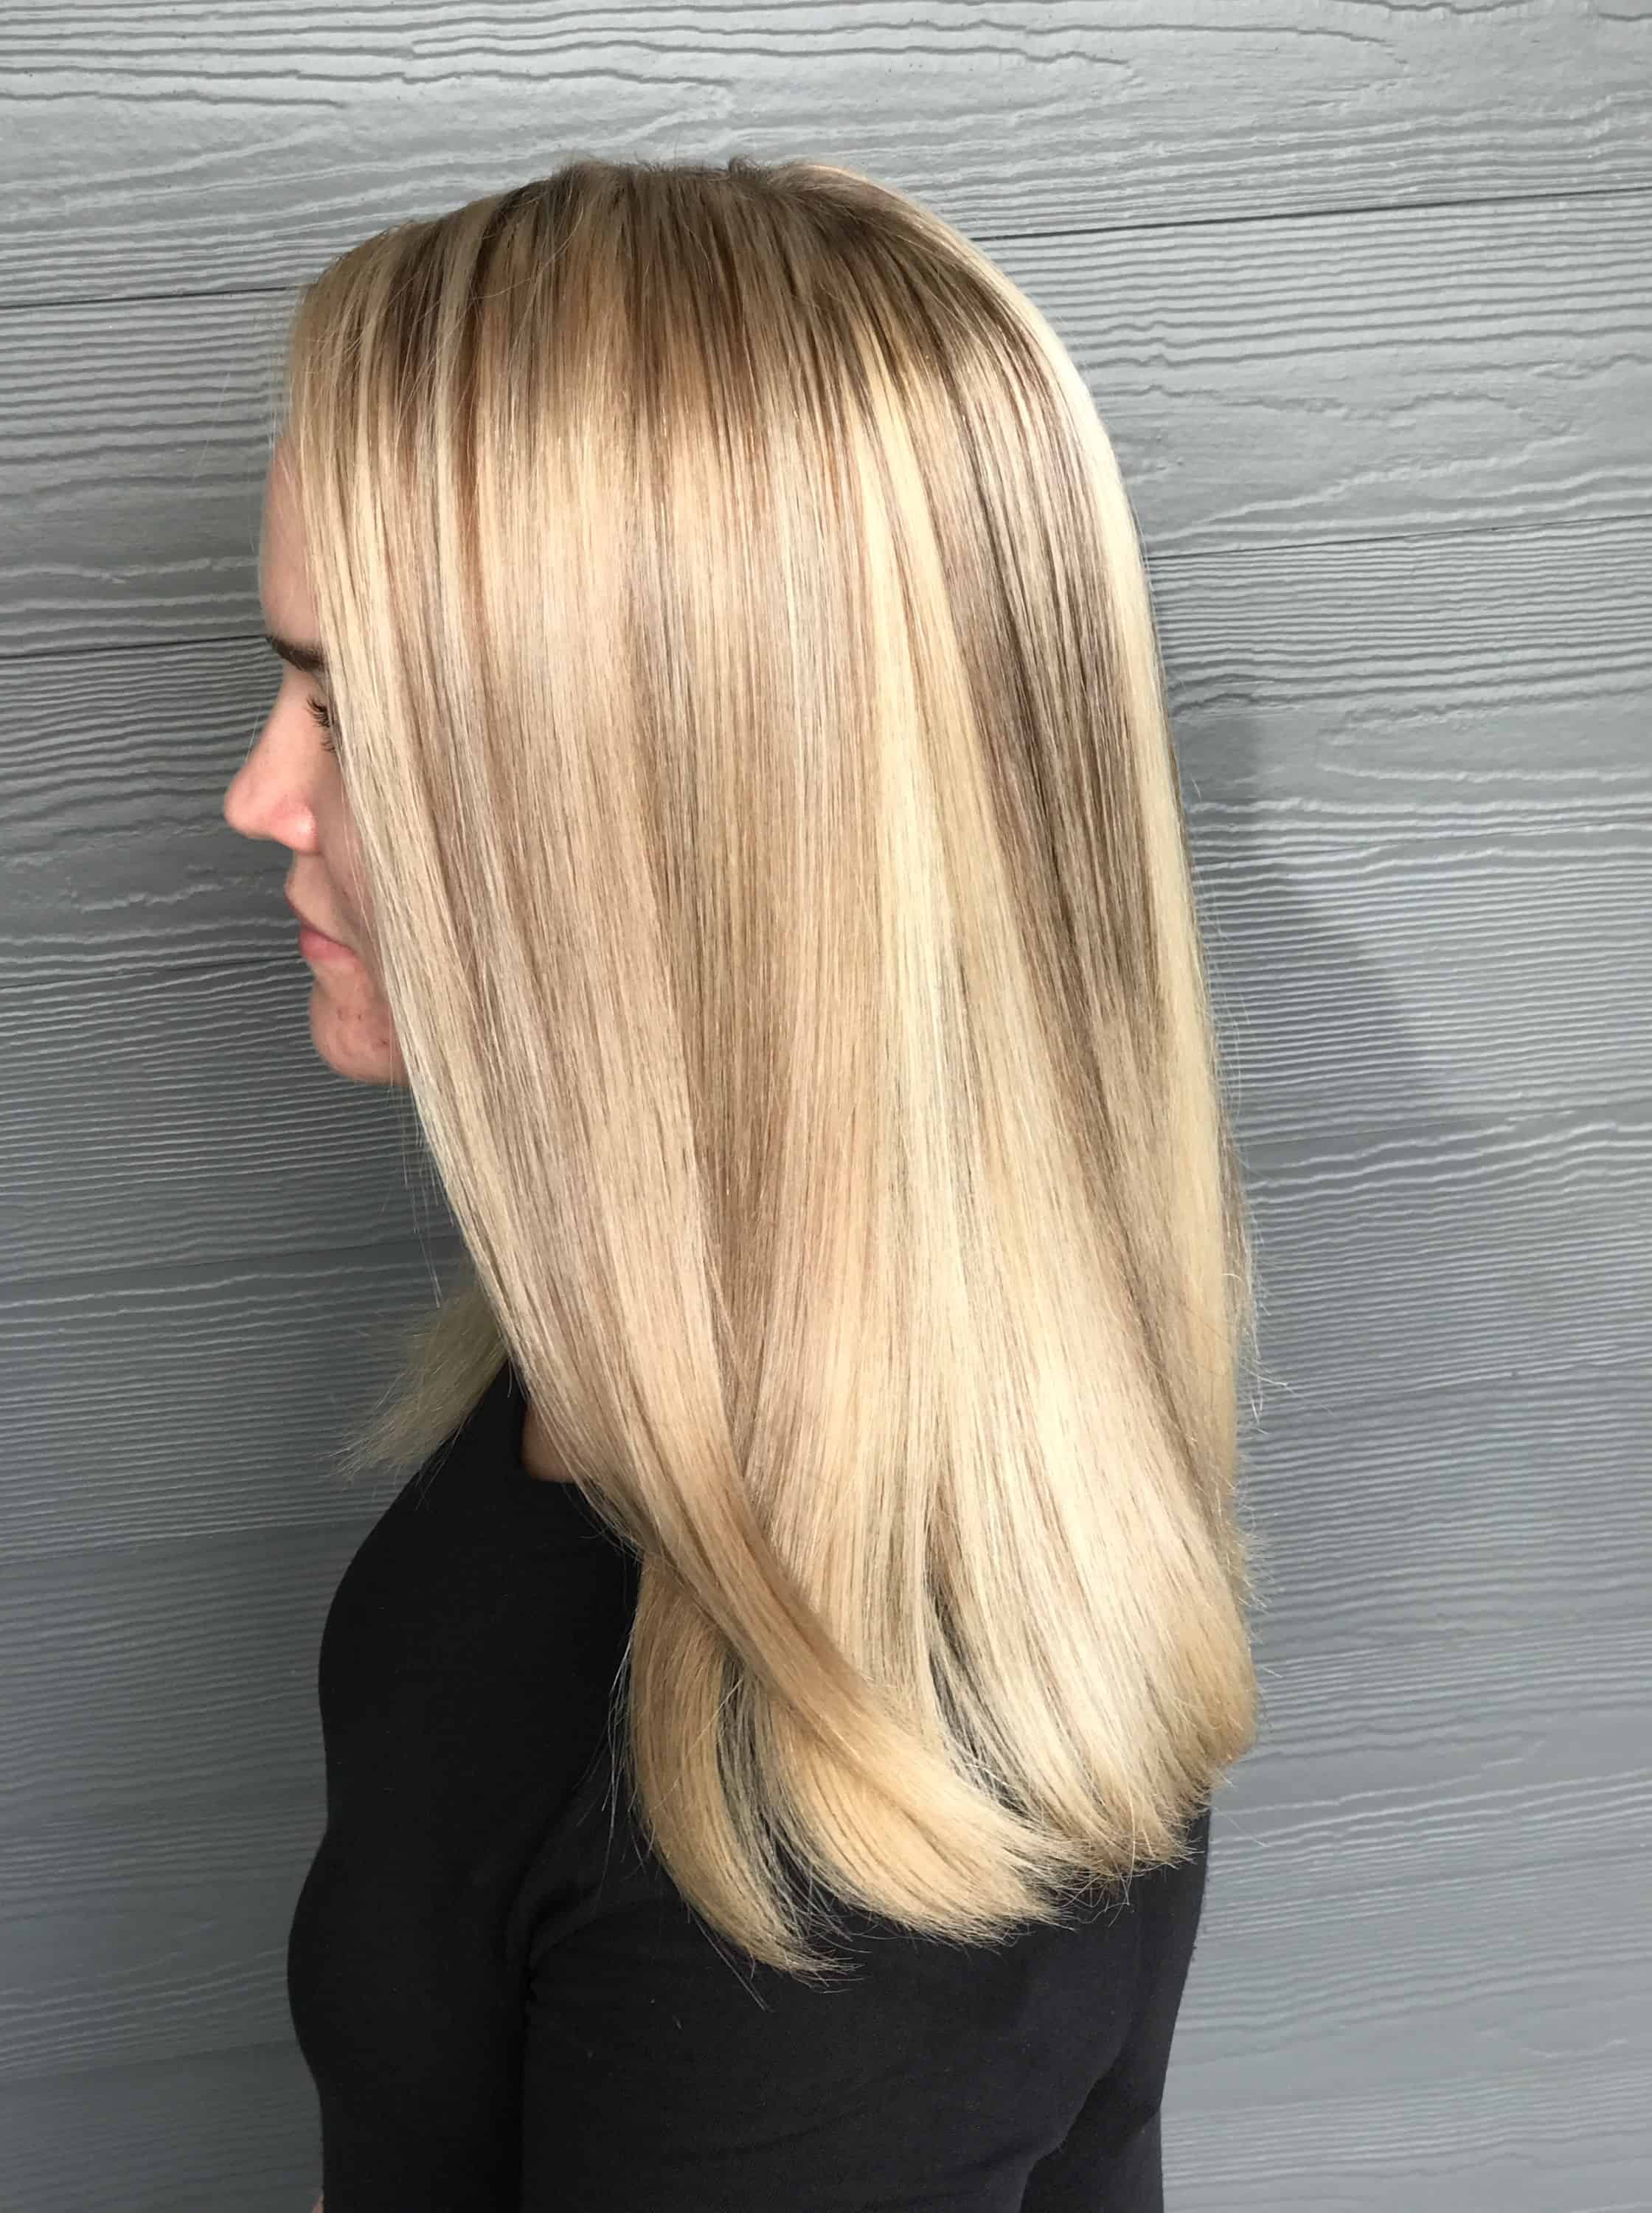 Tampa Hair Color After - Grand Beauty Hair Salon